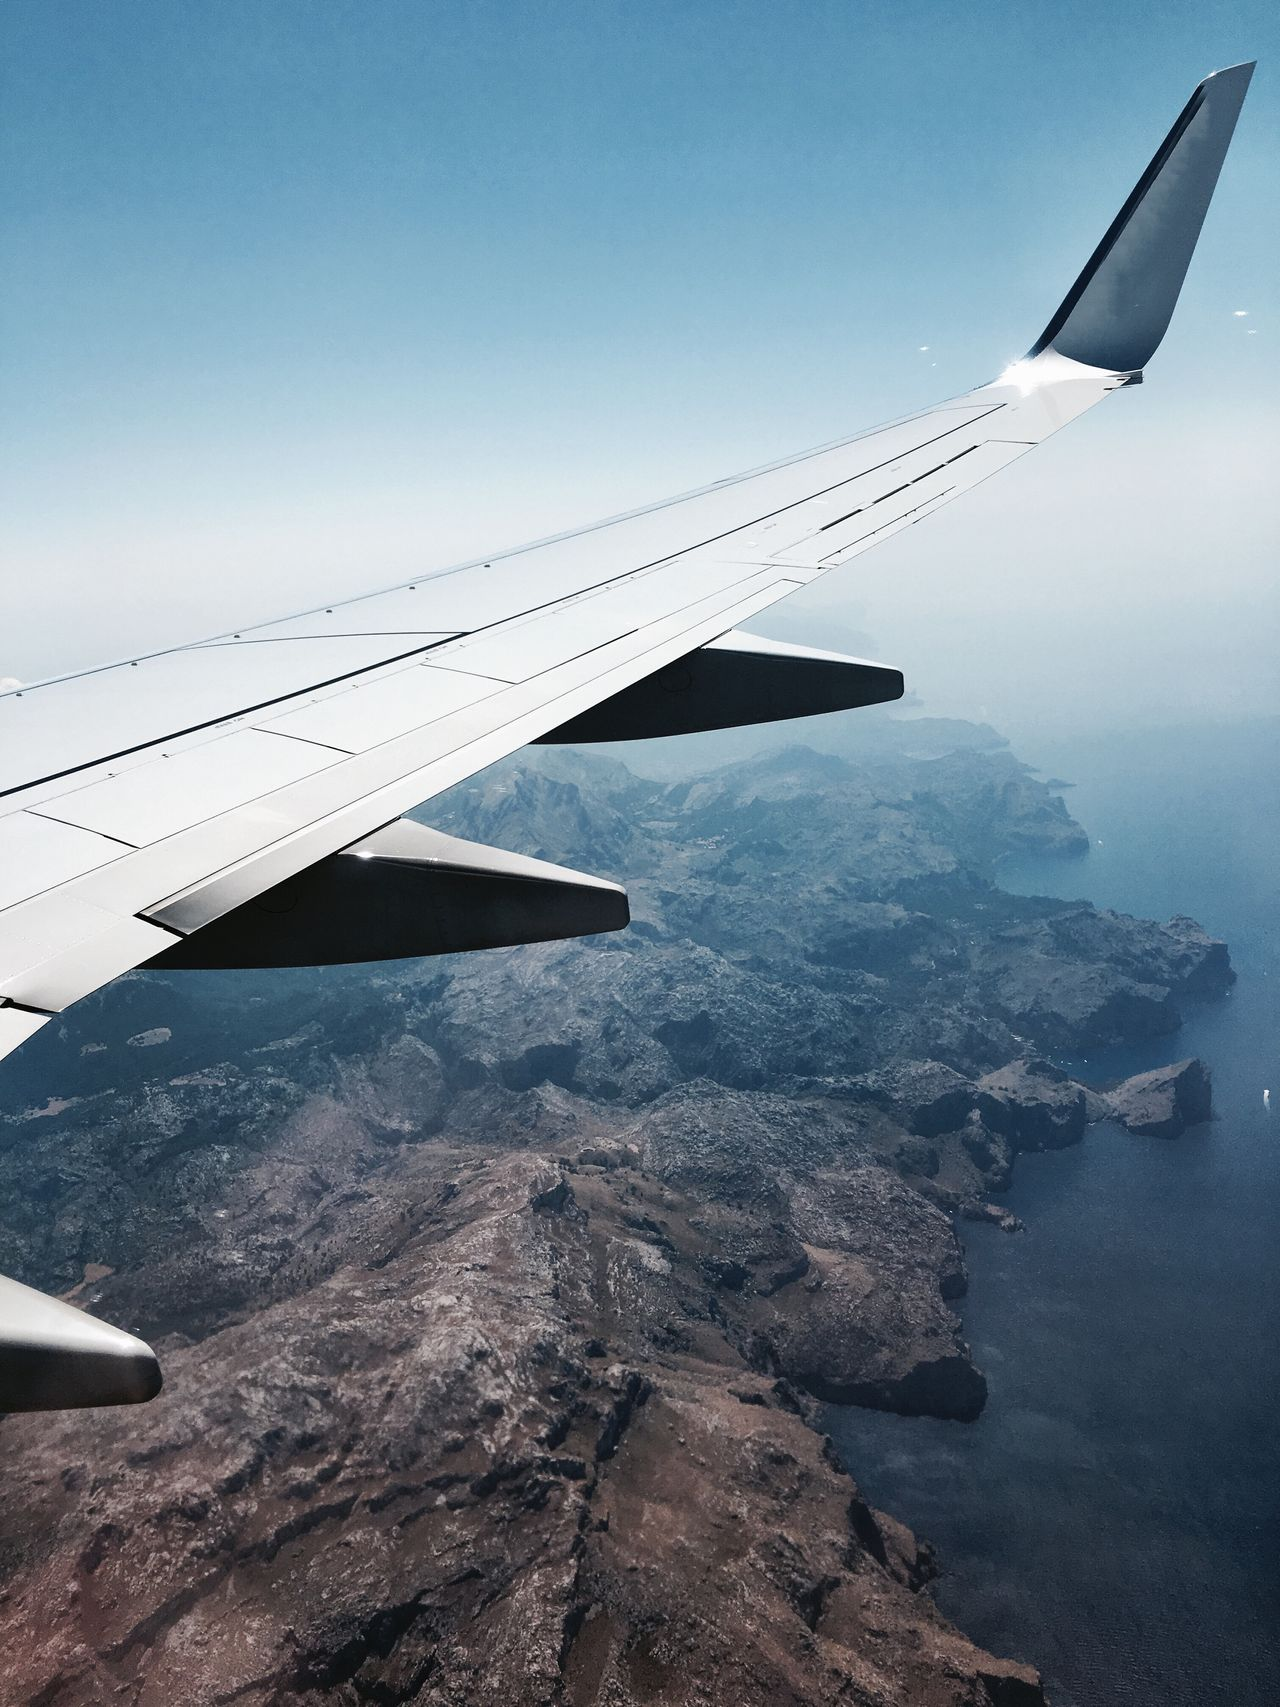 Beautiful stock photos of airplane, transportation, airplane wing, journey